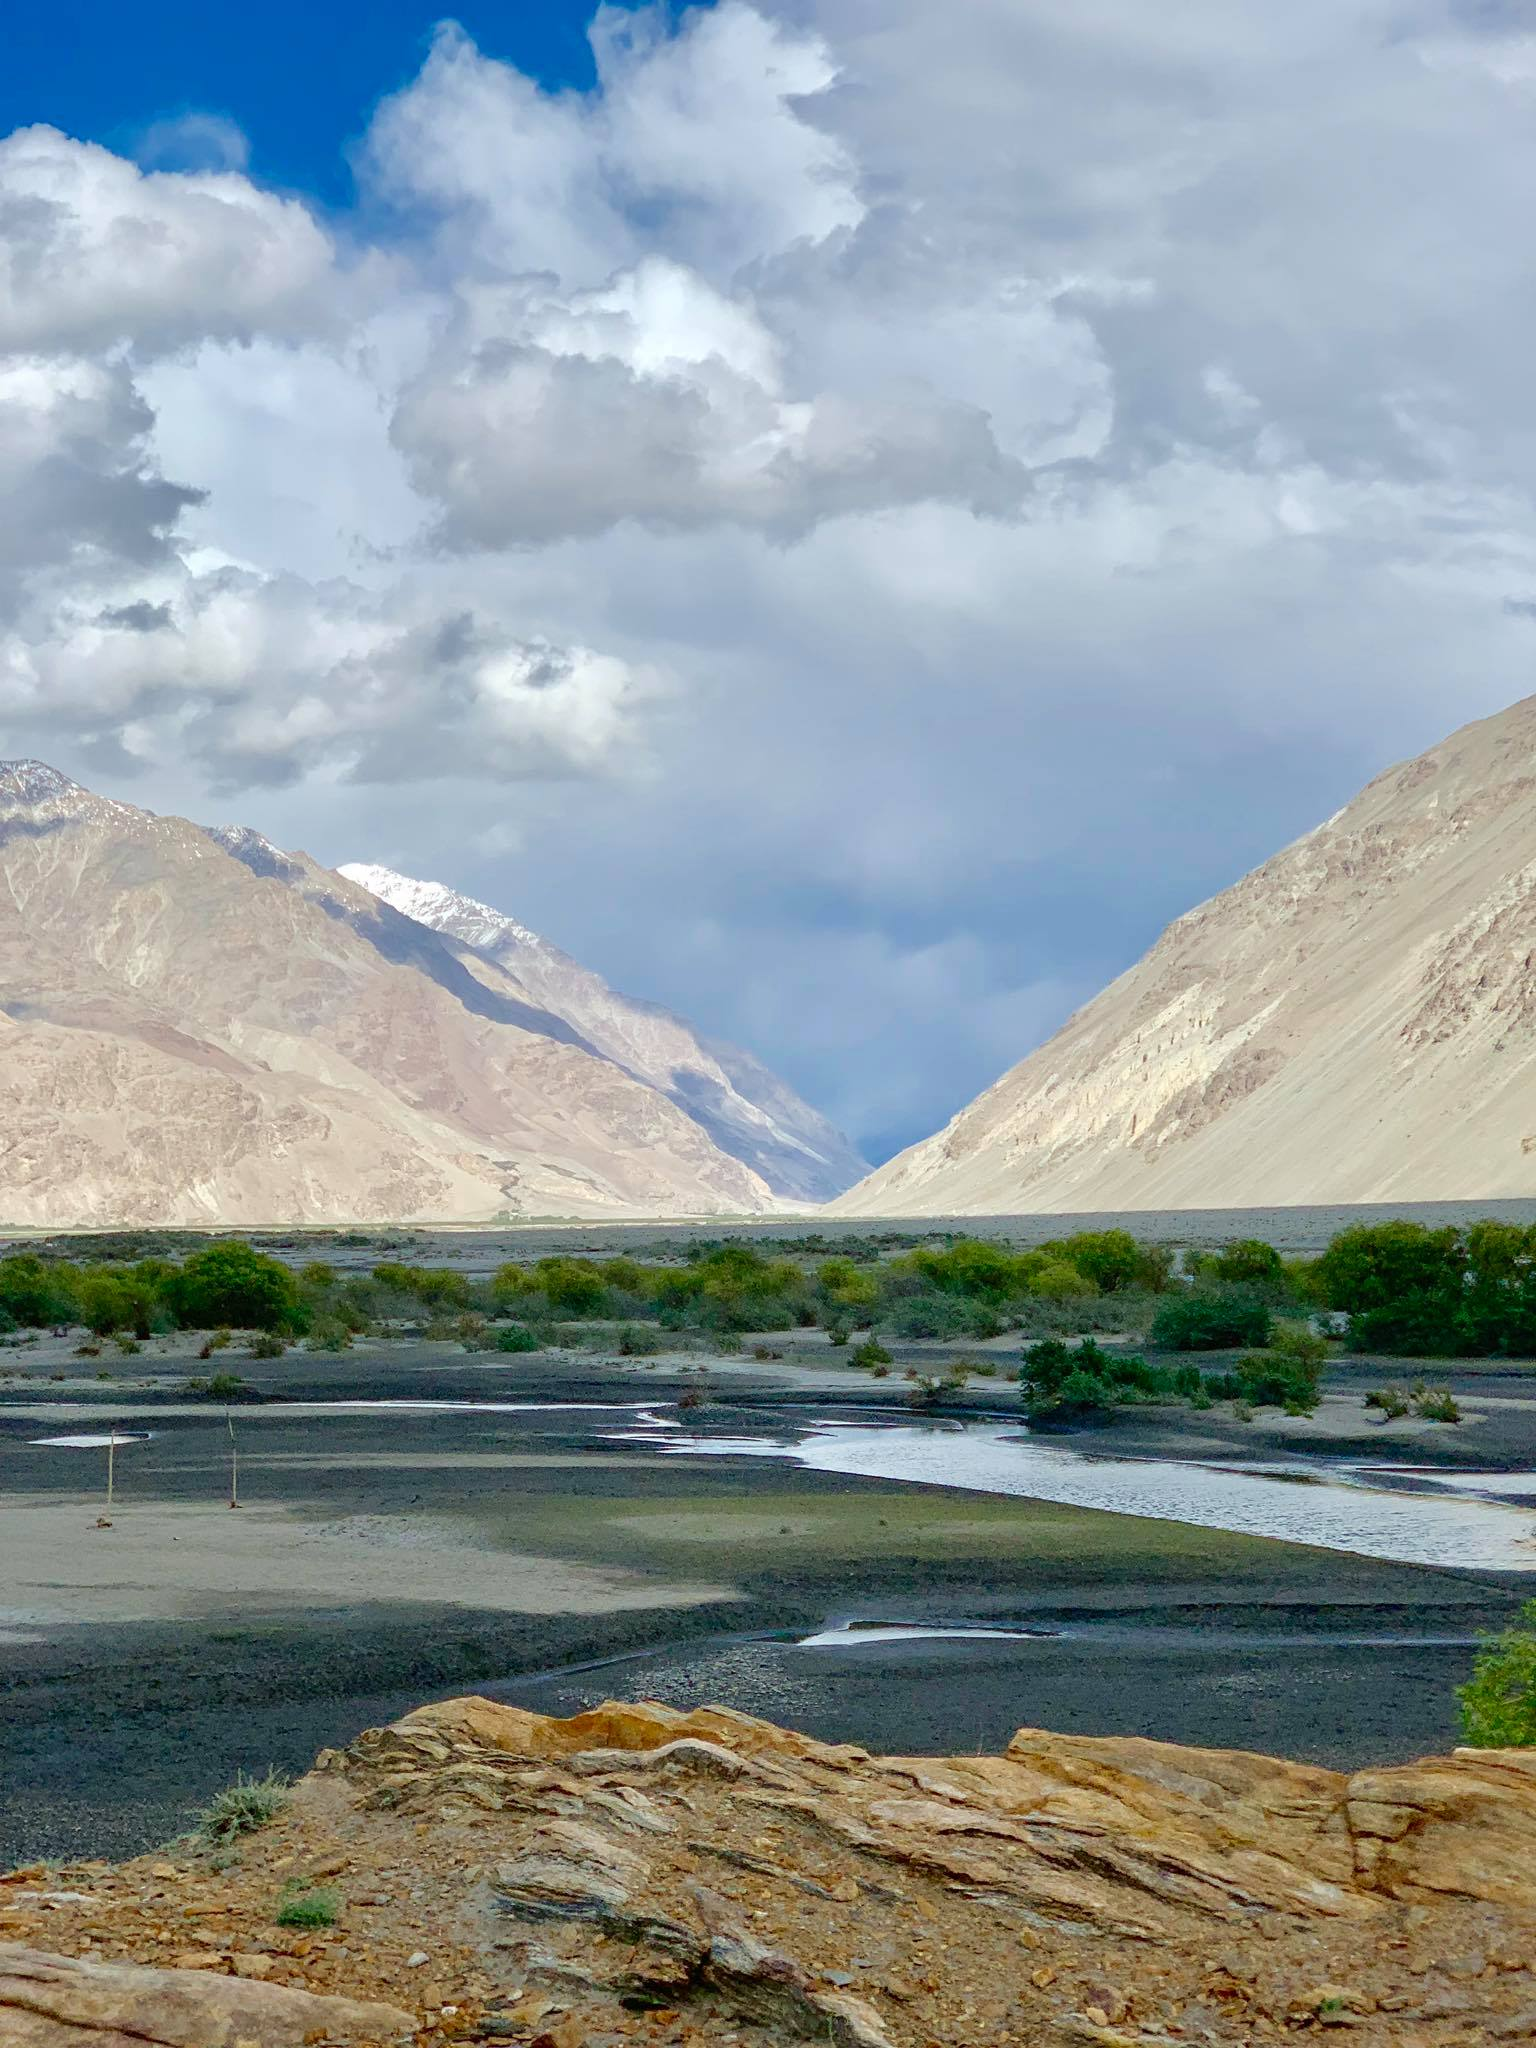 Kach Solo Travels in 2019 Driving from Ishkashim to Wakhan Valley13.jpg